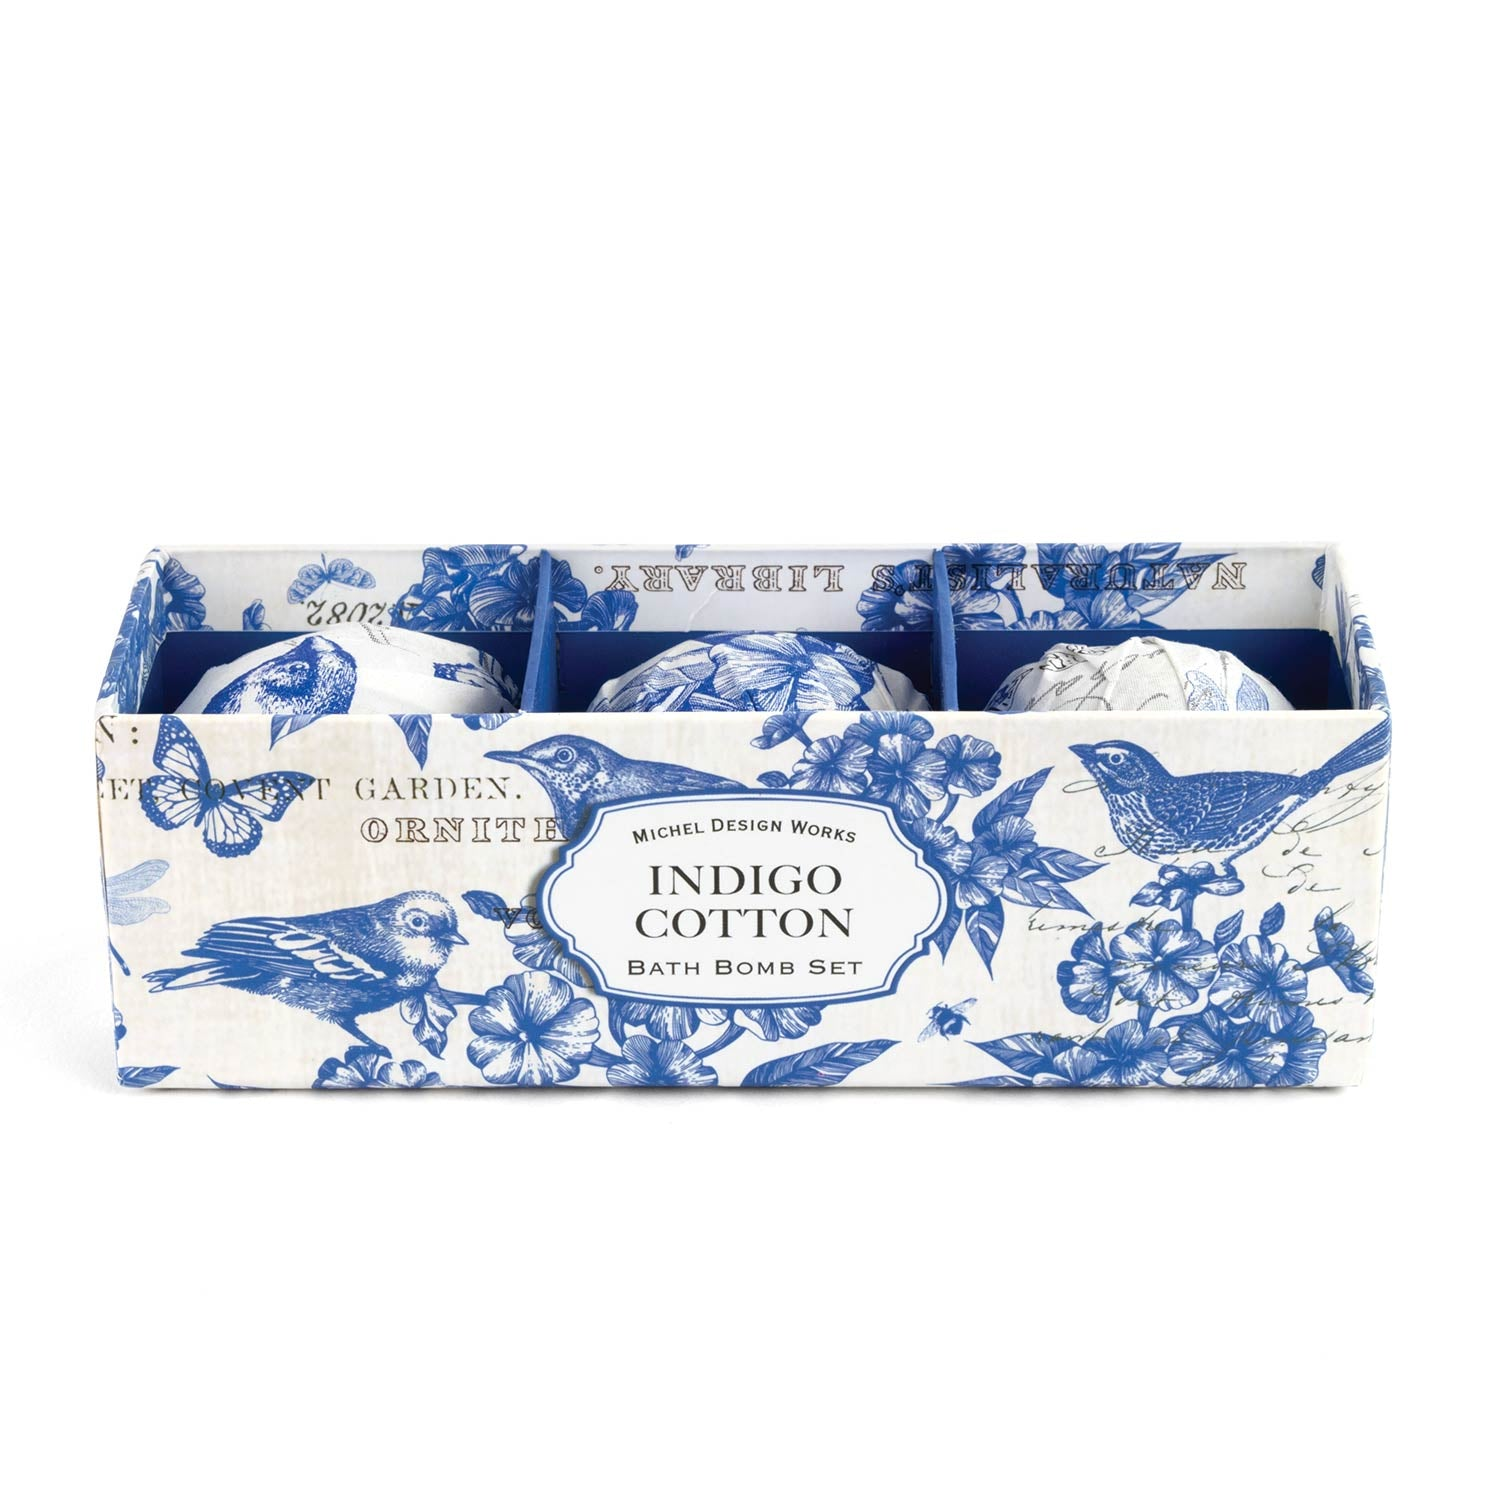 Indigo Cotton Bath Bomb Set